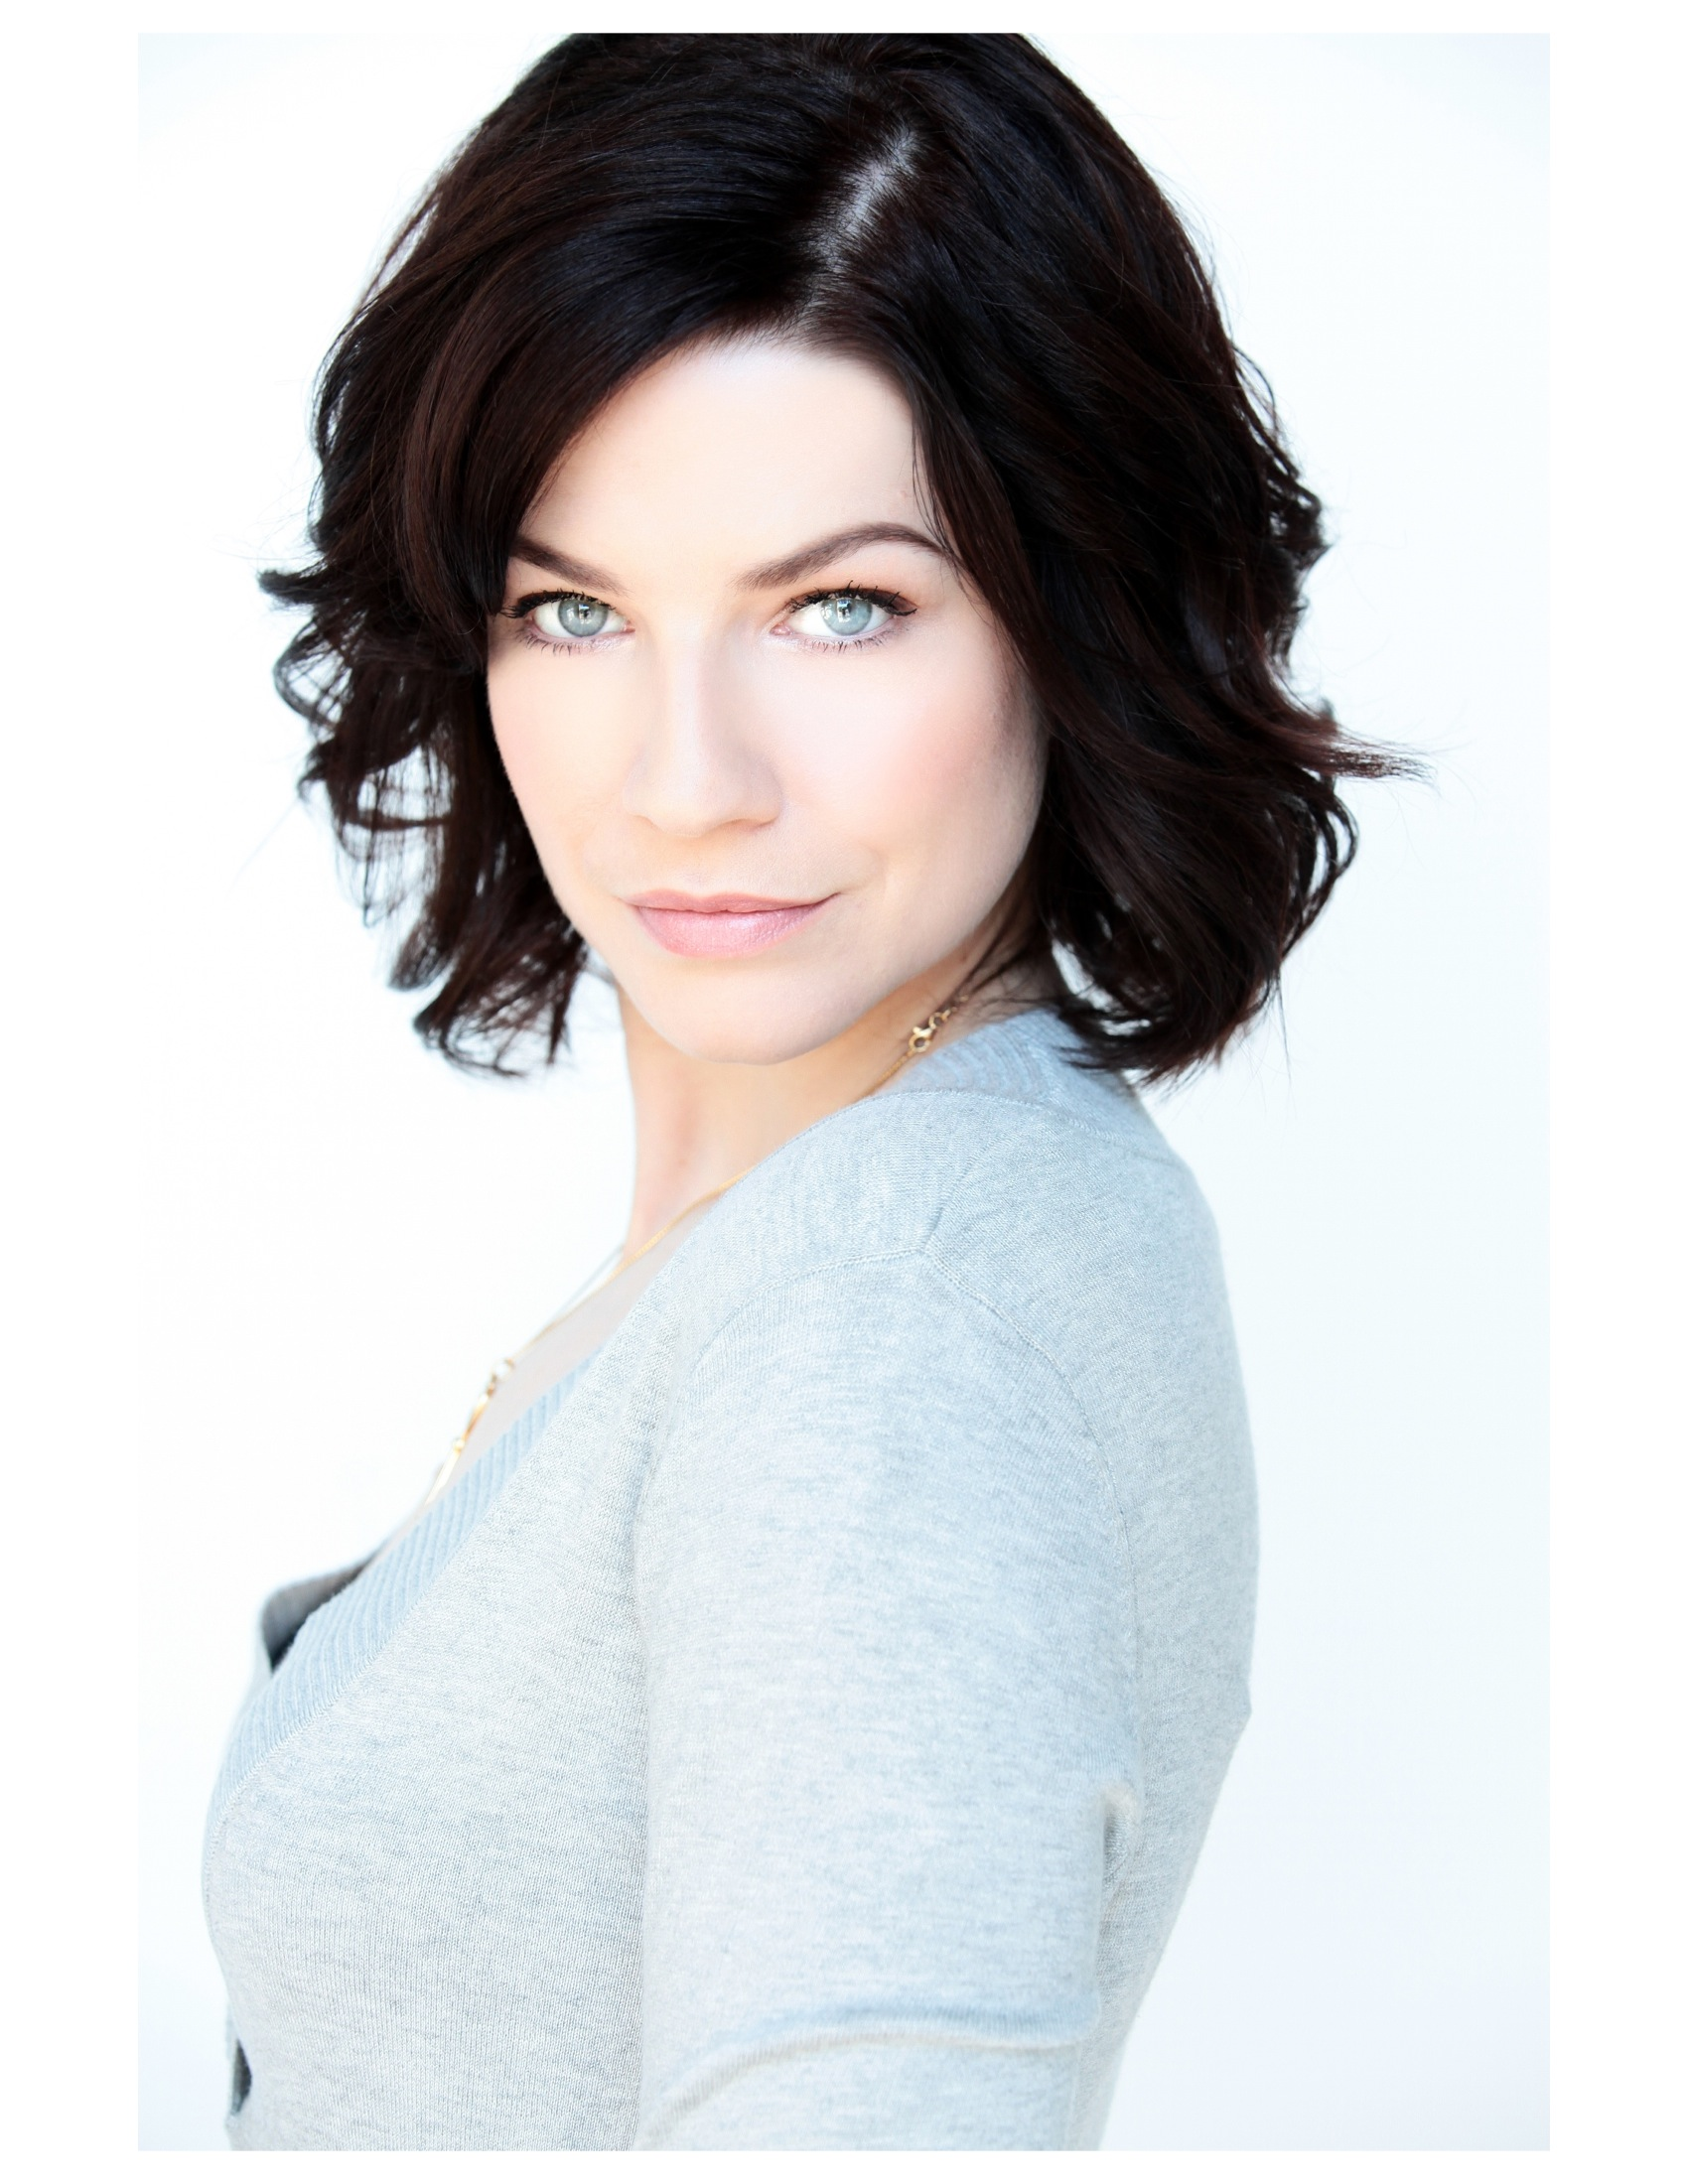 Actress Alisen Down Speaks About Her Role In Gracepoint